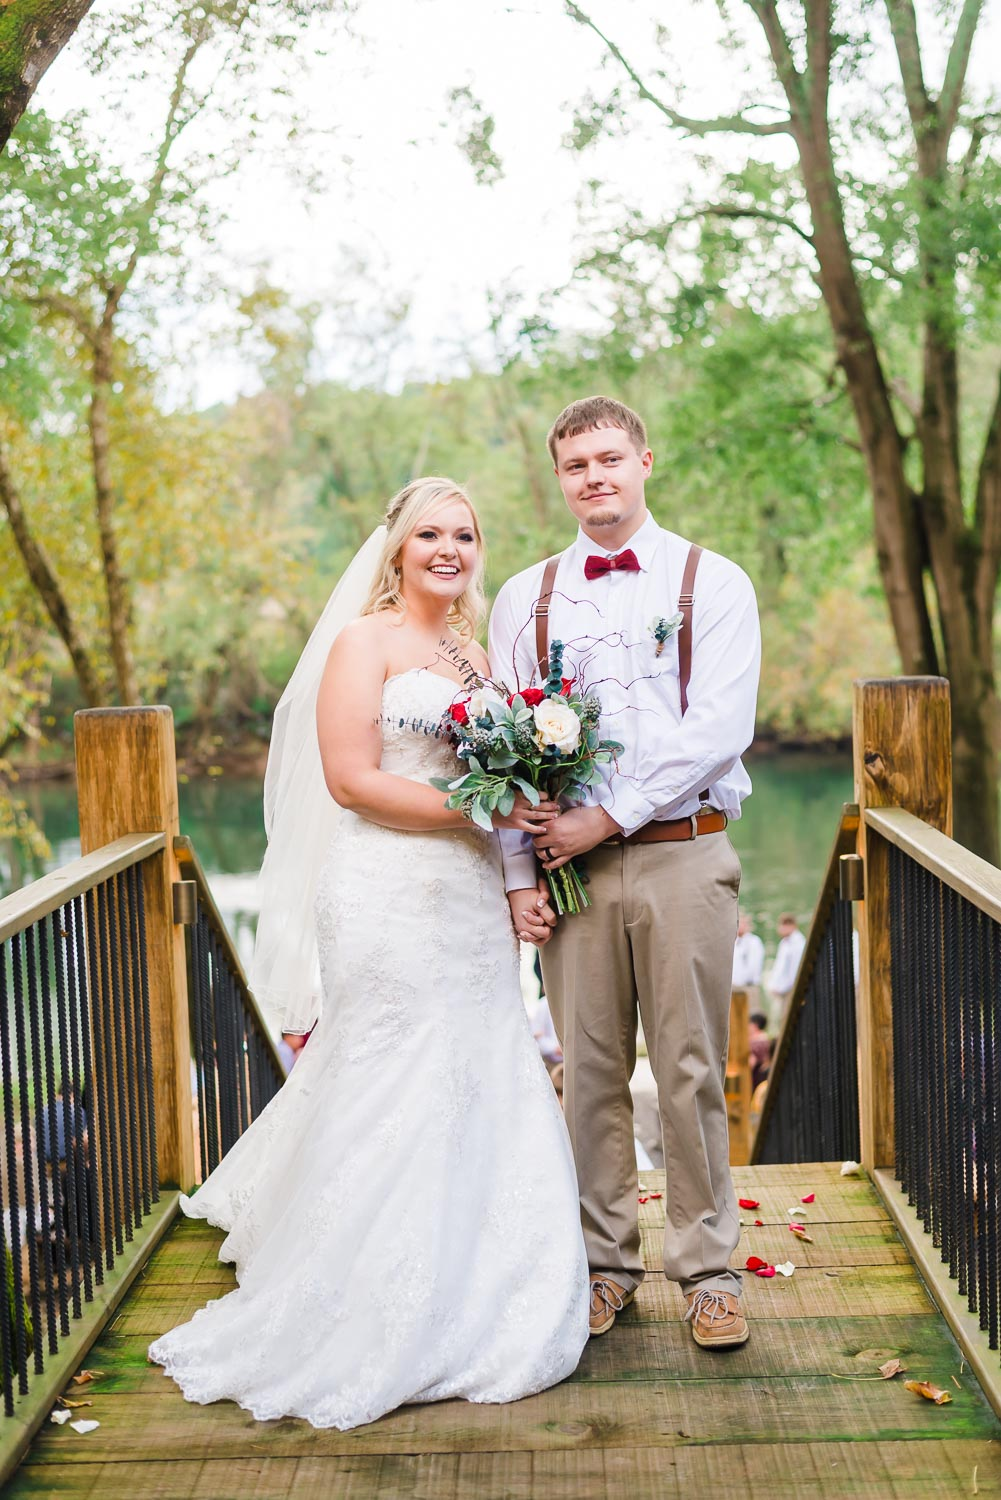 Wedding couple just married standing at the top of the stairs at Hiwassee River weddings between Knoxville And Chattanooga TN